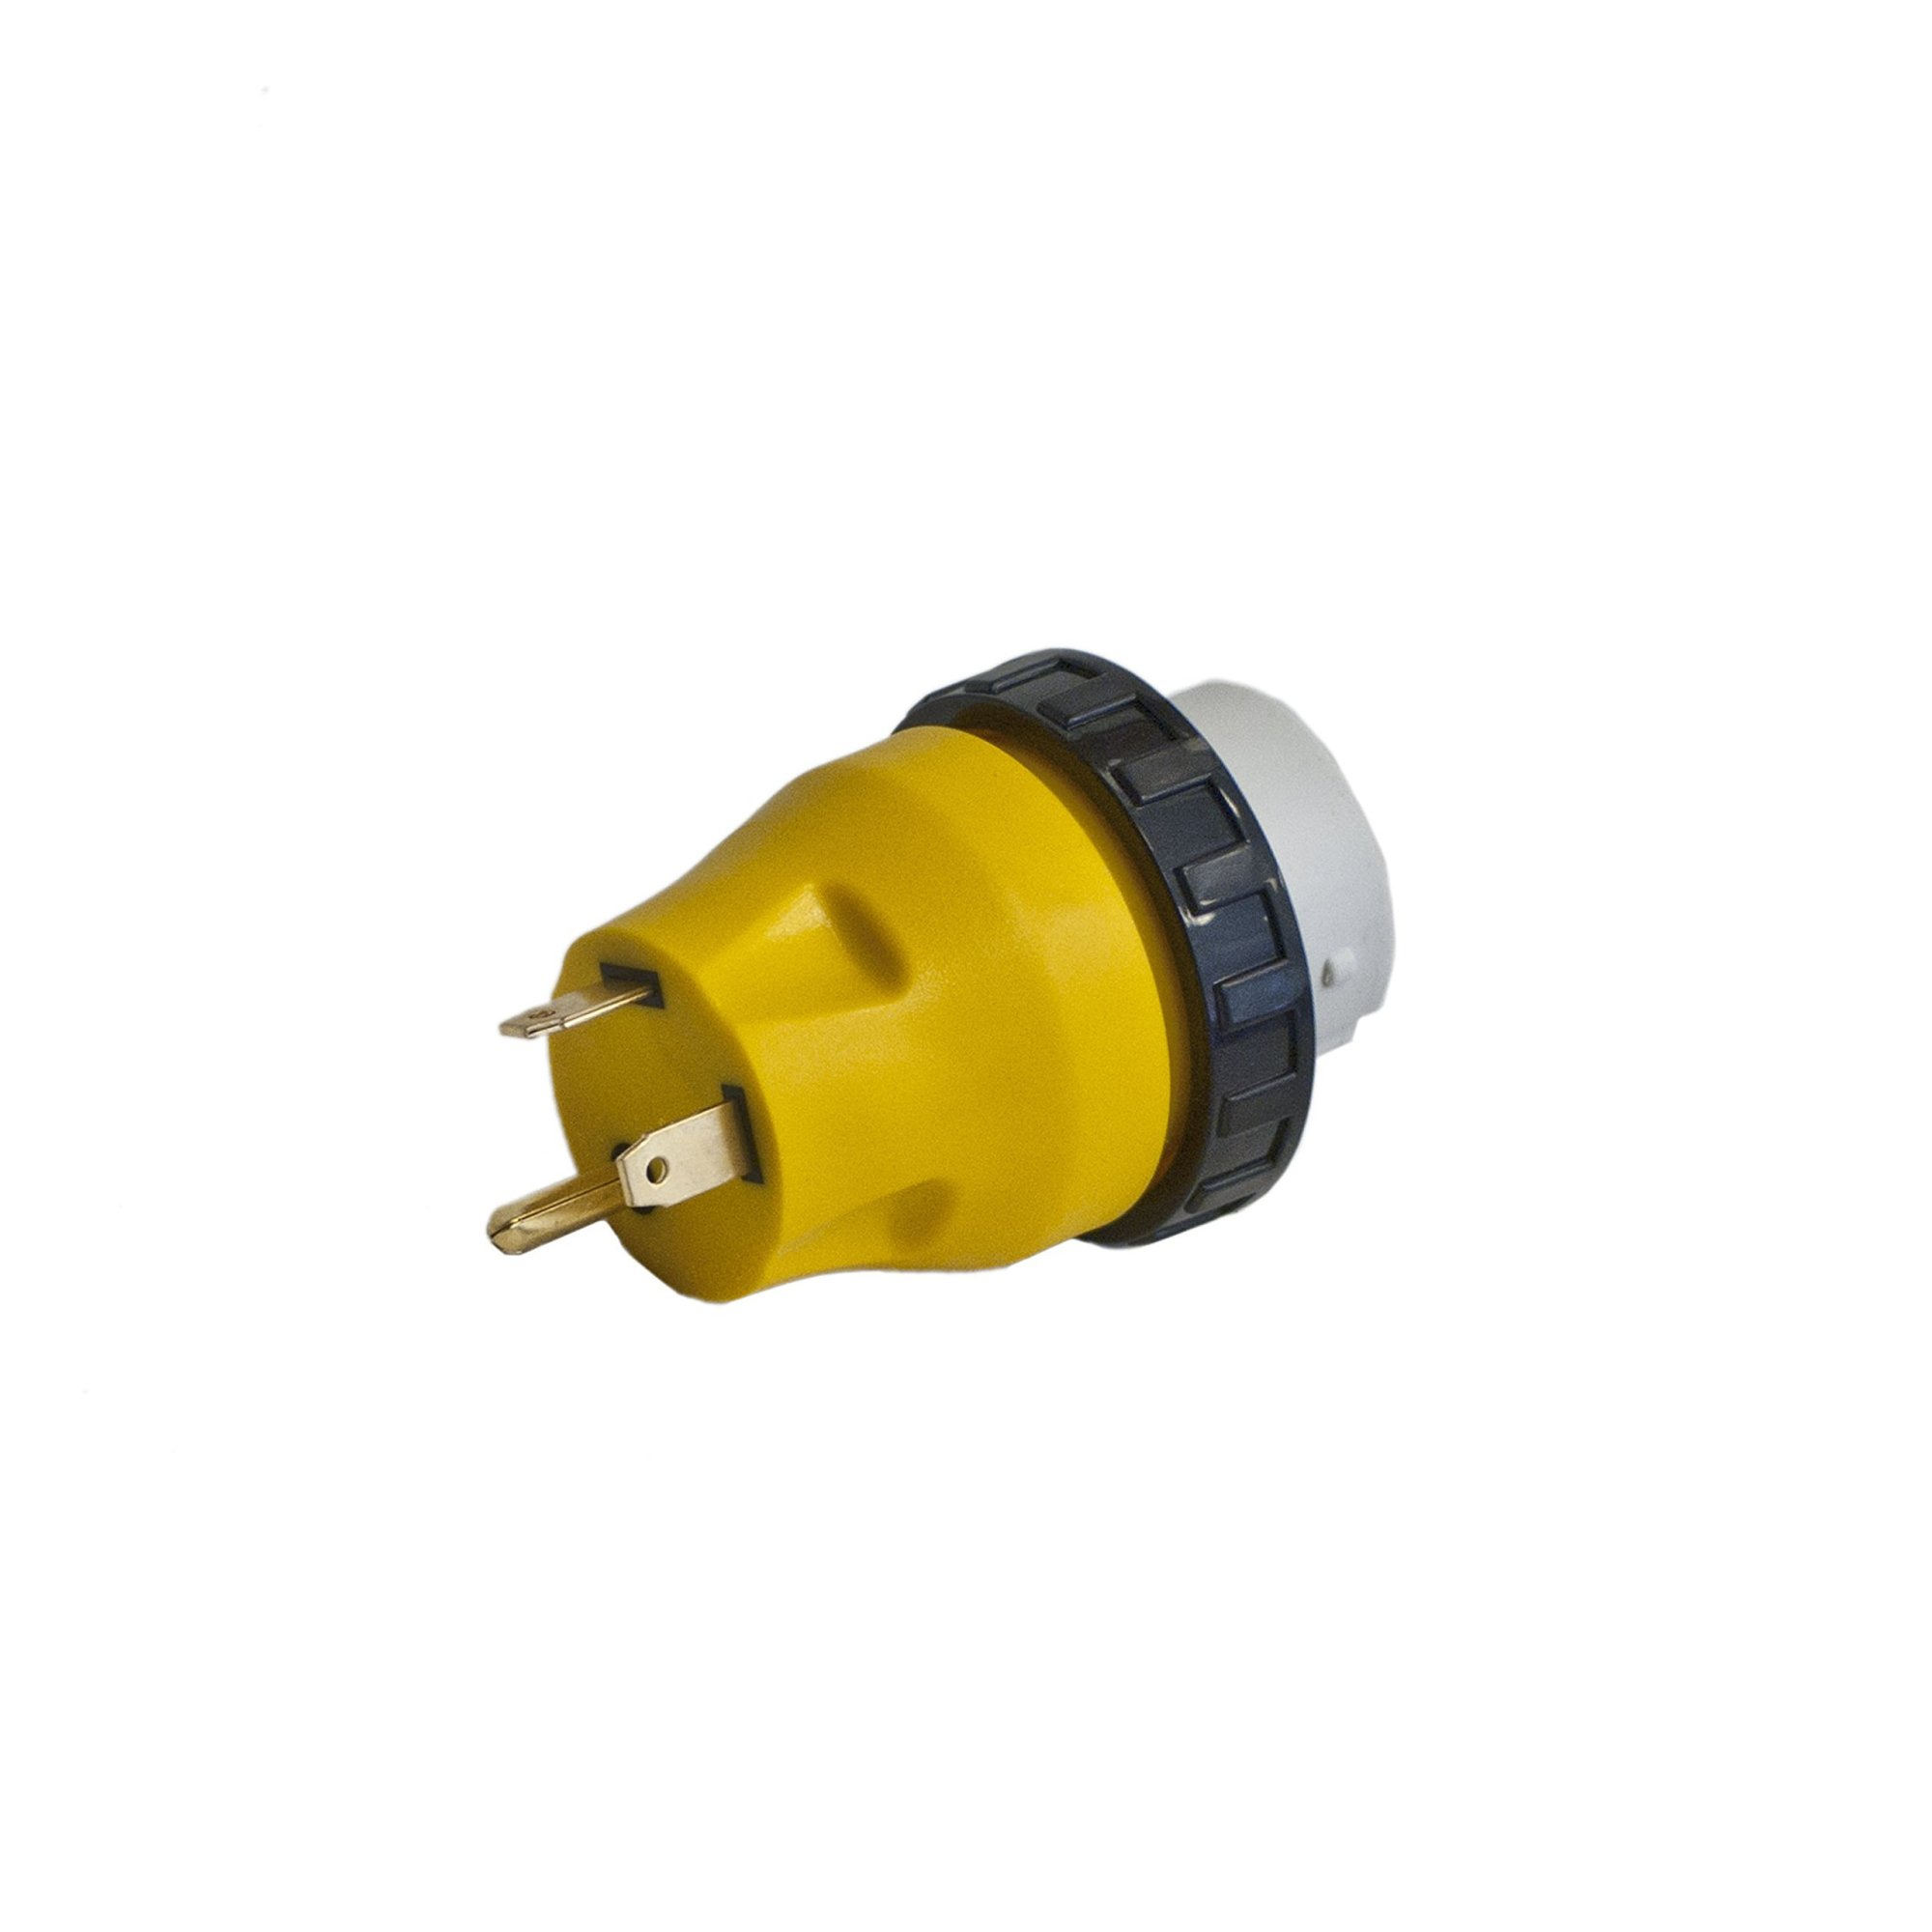 hight resolution of aleko l30 50 rv electrical locking adapter 30a male to 50a female locking plug connector